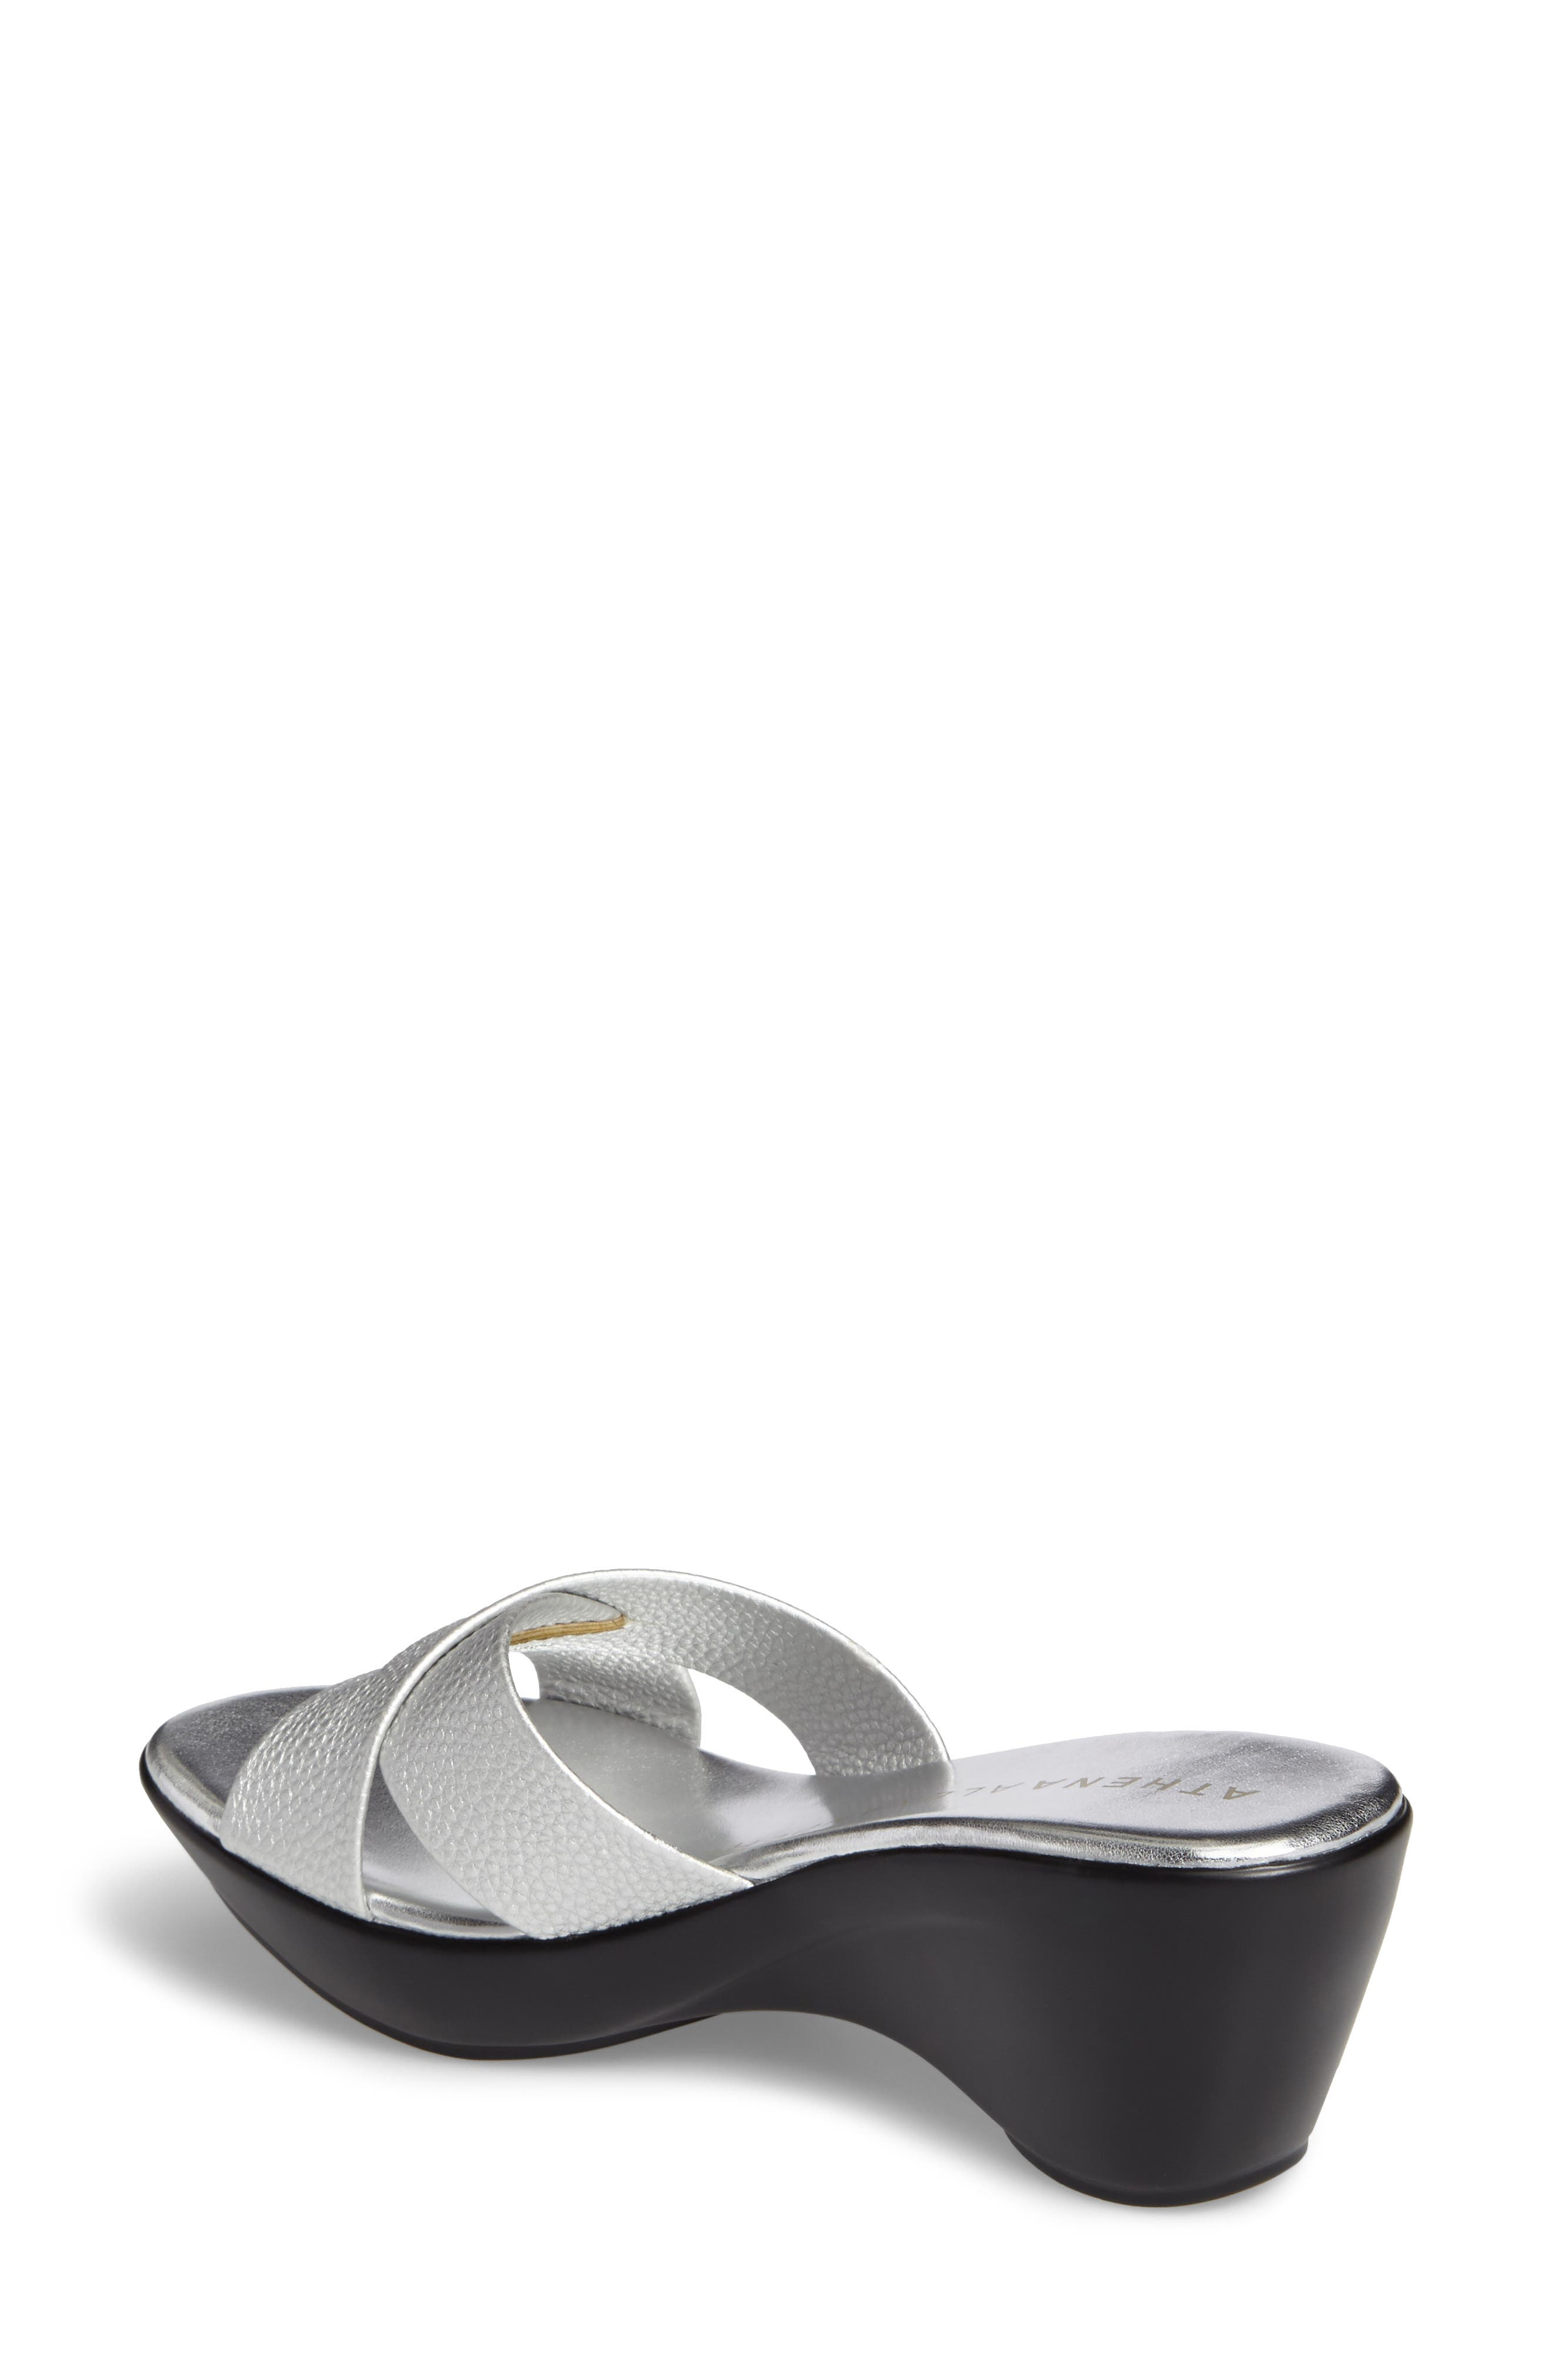 Verna Wedge Slide Sandal,                             Alternate thumbnail 2, color,                             SILVER FAUX LEATHER